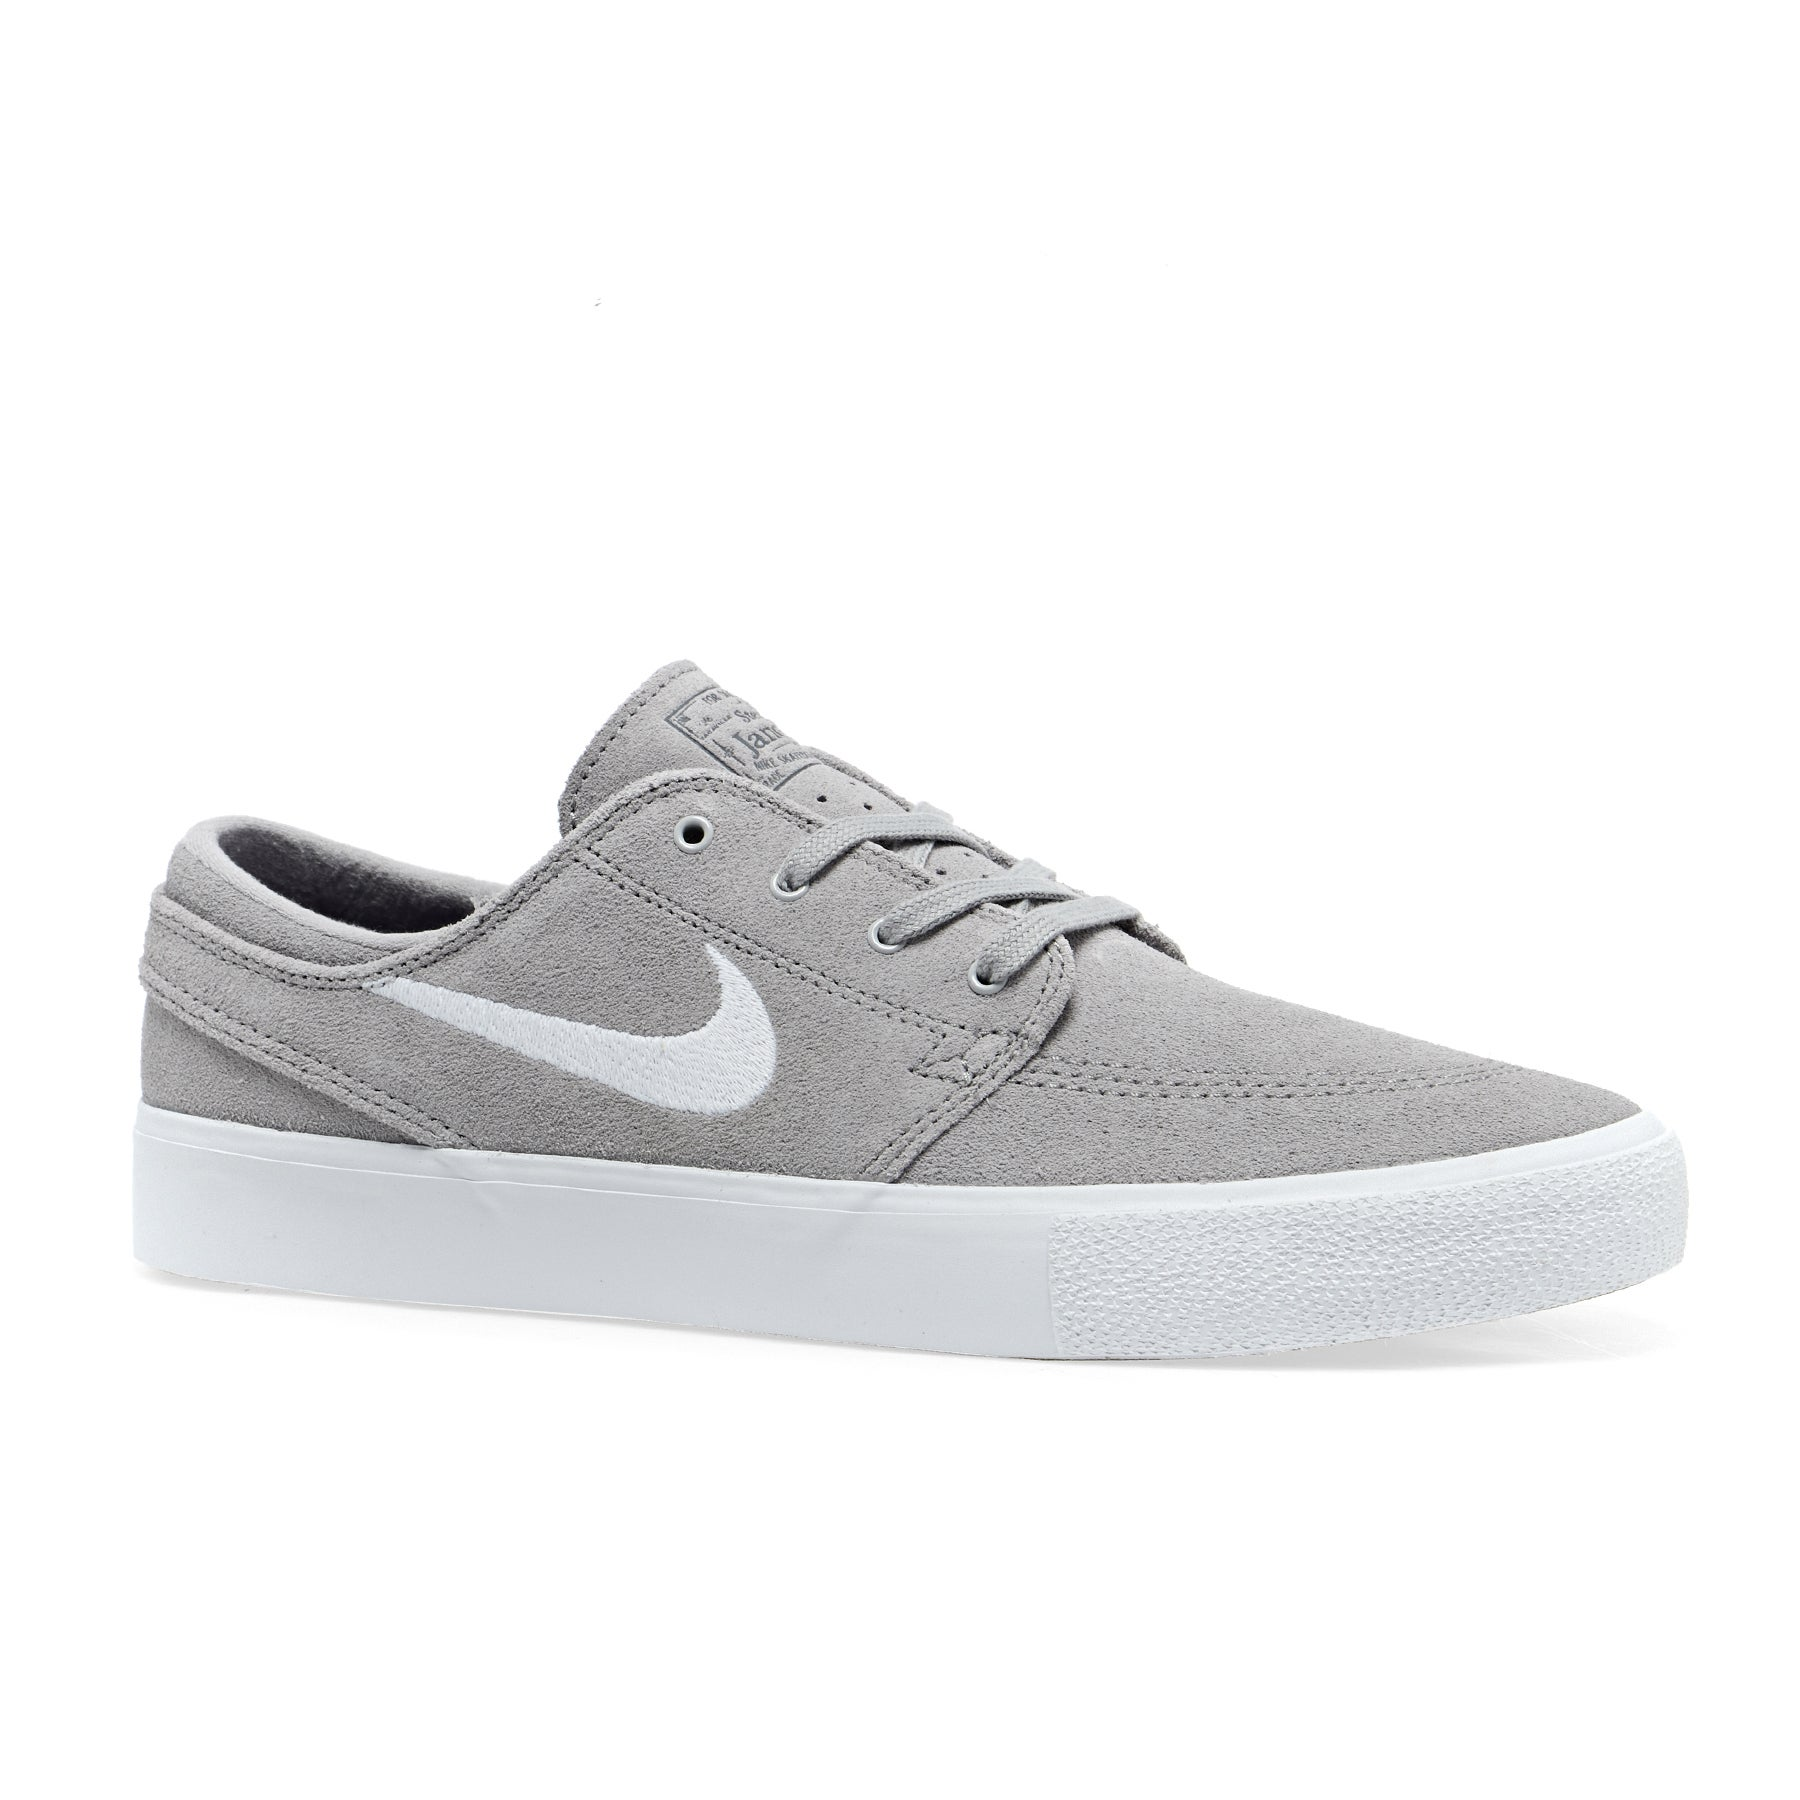 newest collection 9ab7d 95a36 Nike SB Zoom Janoski Rm Shoes. Atmosphere Grey White Gum Brown